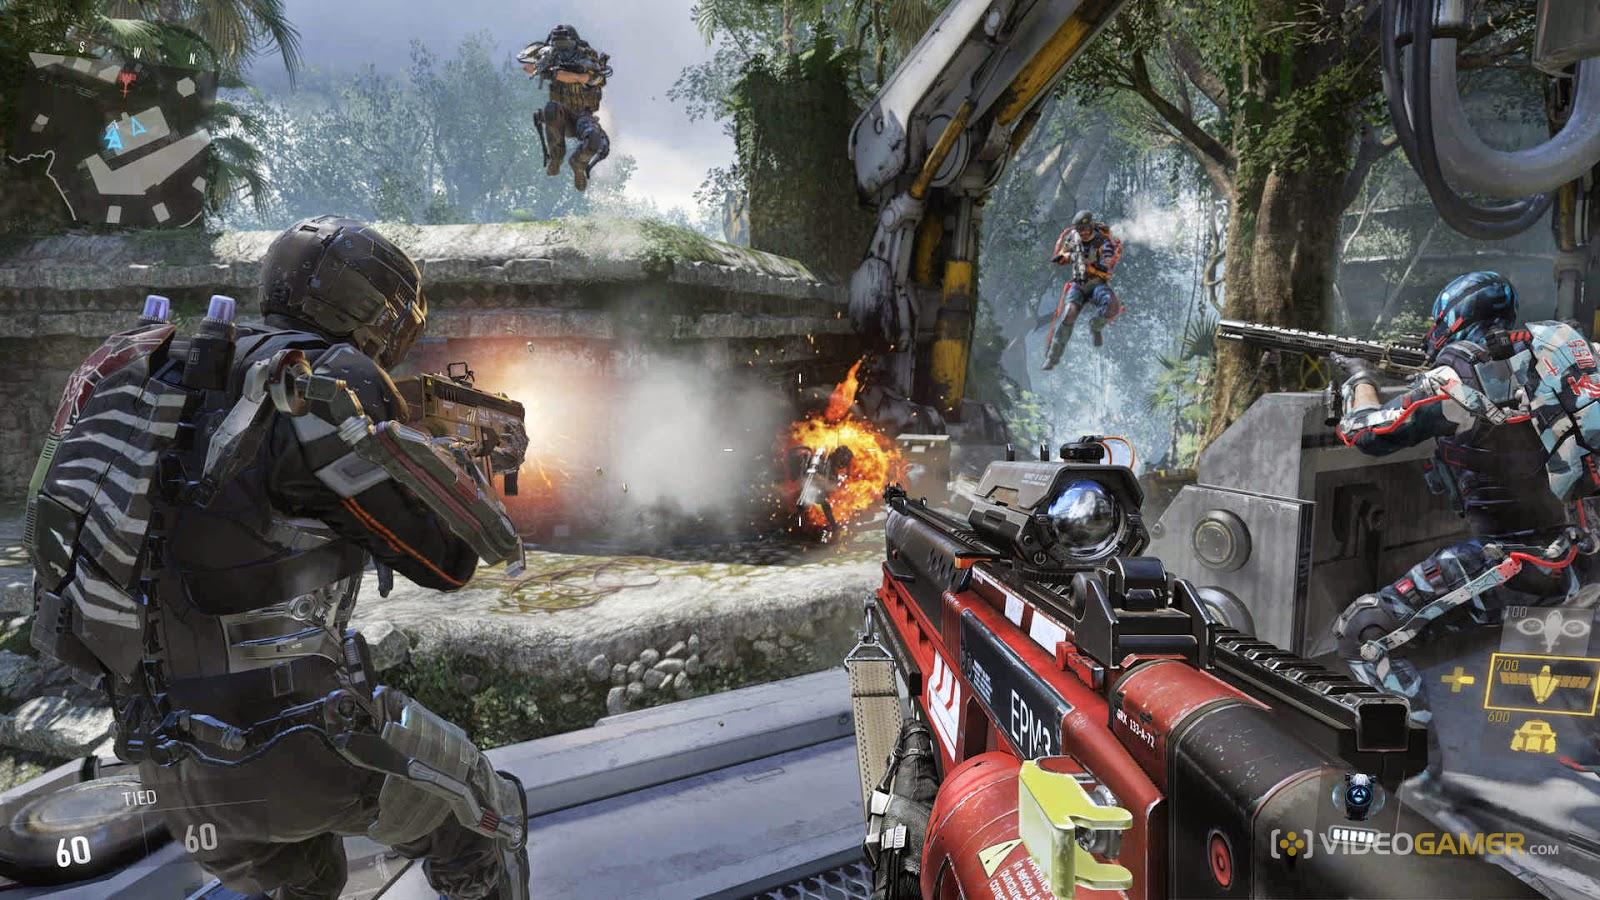 Call of duty advanced warfare compressed pc game Download